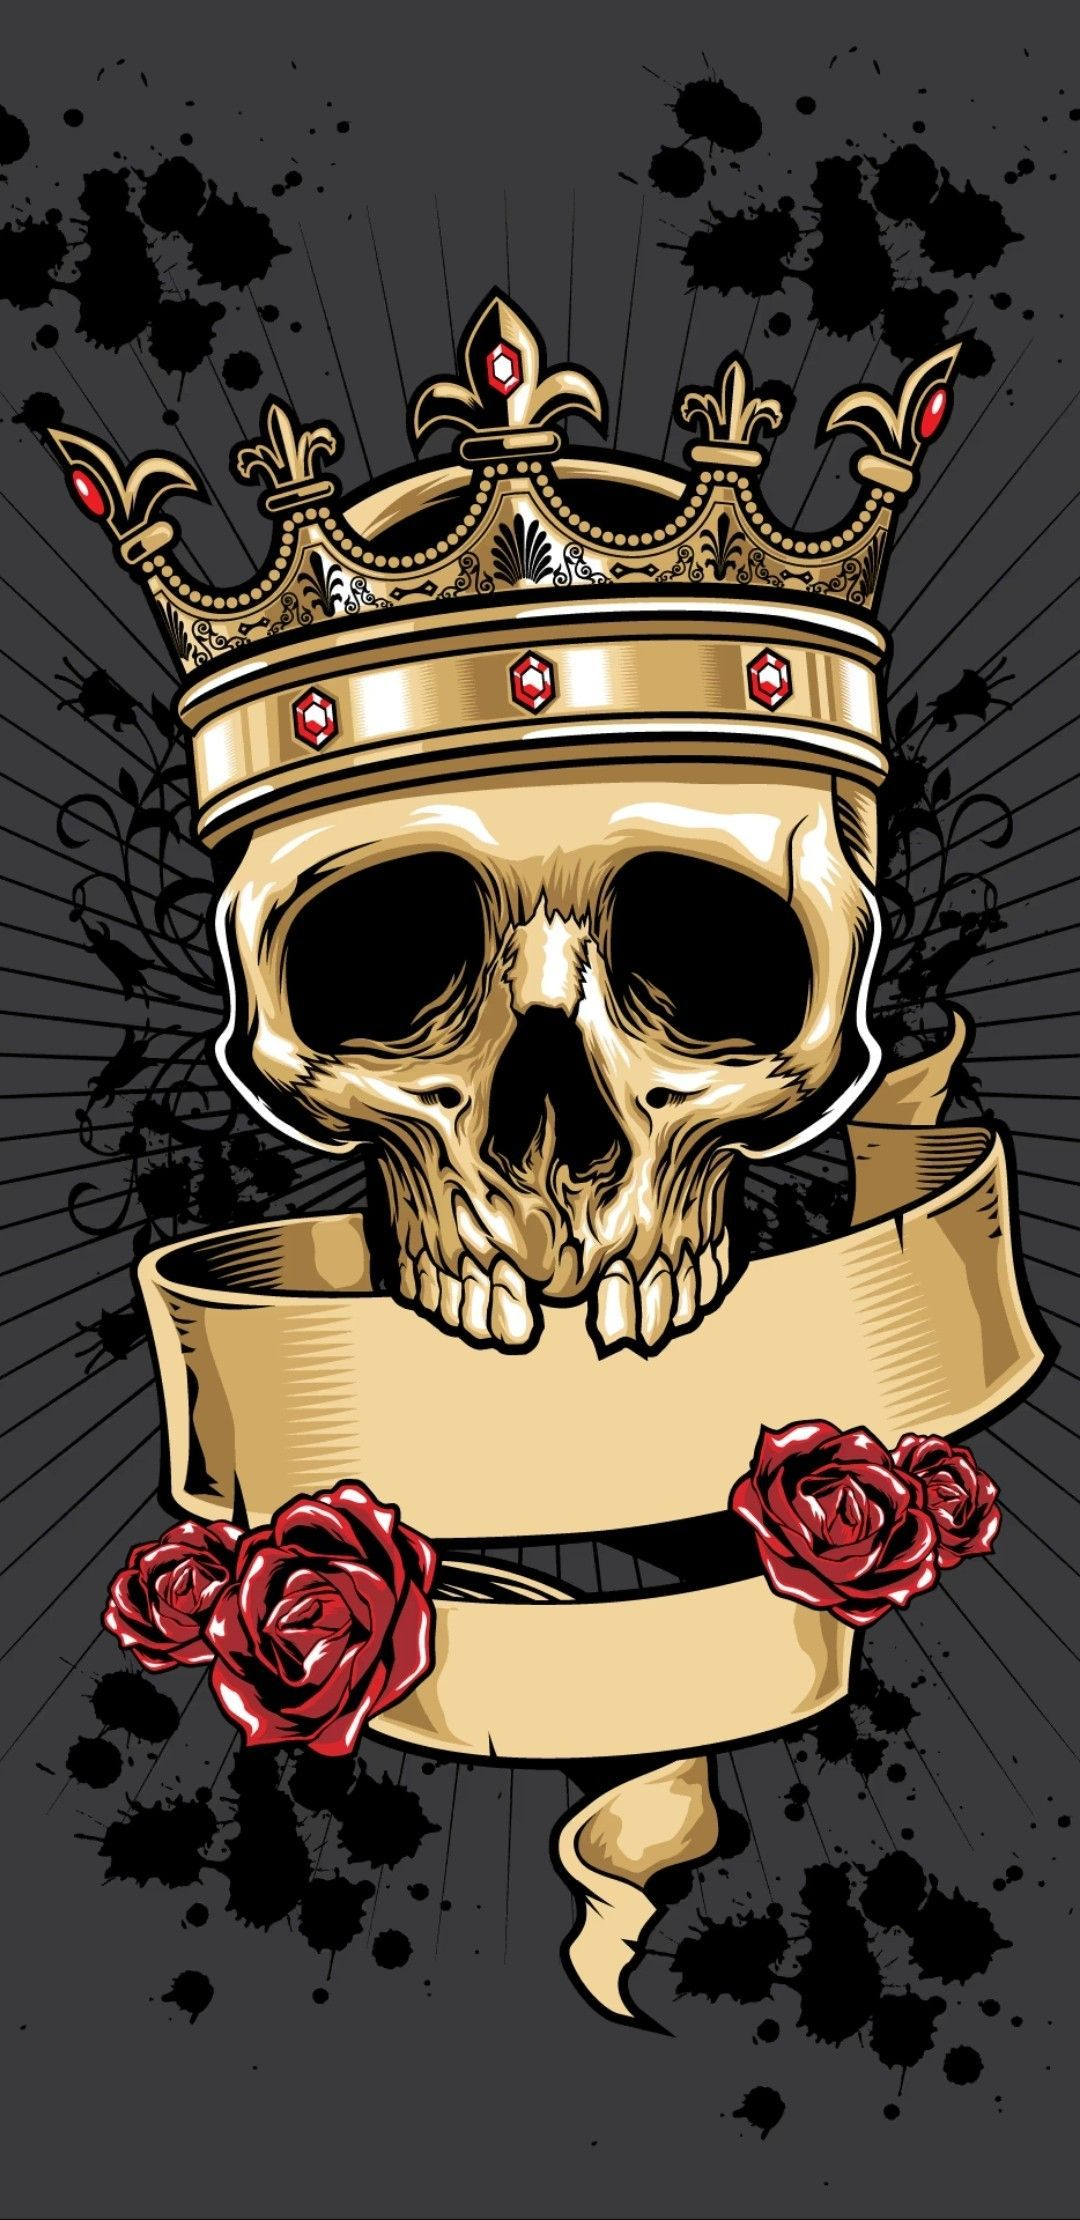 Skull With Crown Wallpapers On Wallpaperdog